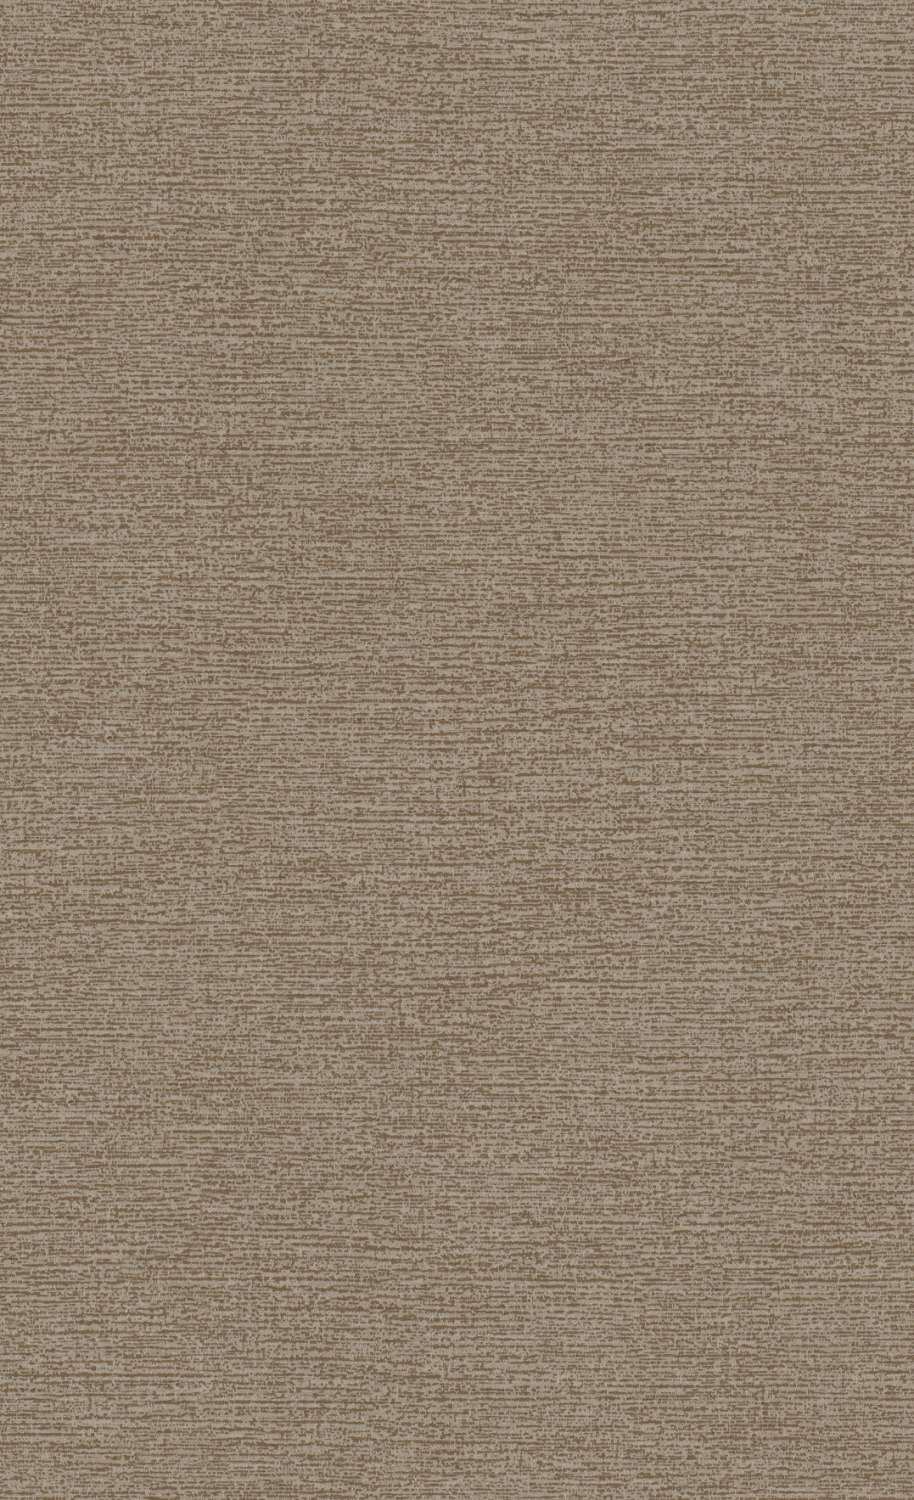 Metallic Taupe Wallpaper C7139 | Commercial, Hospitality & Hotel Lobby